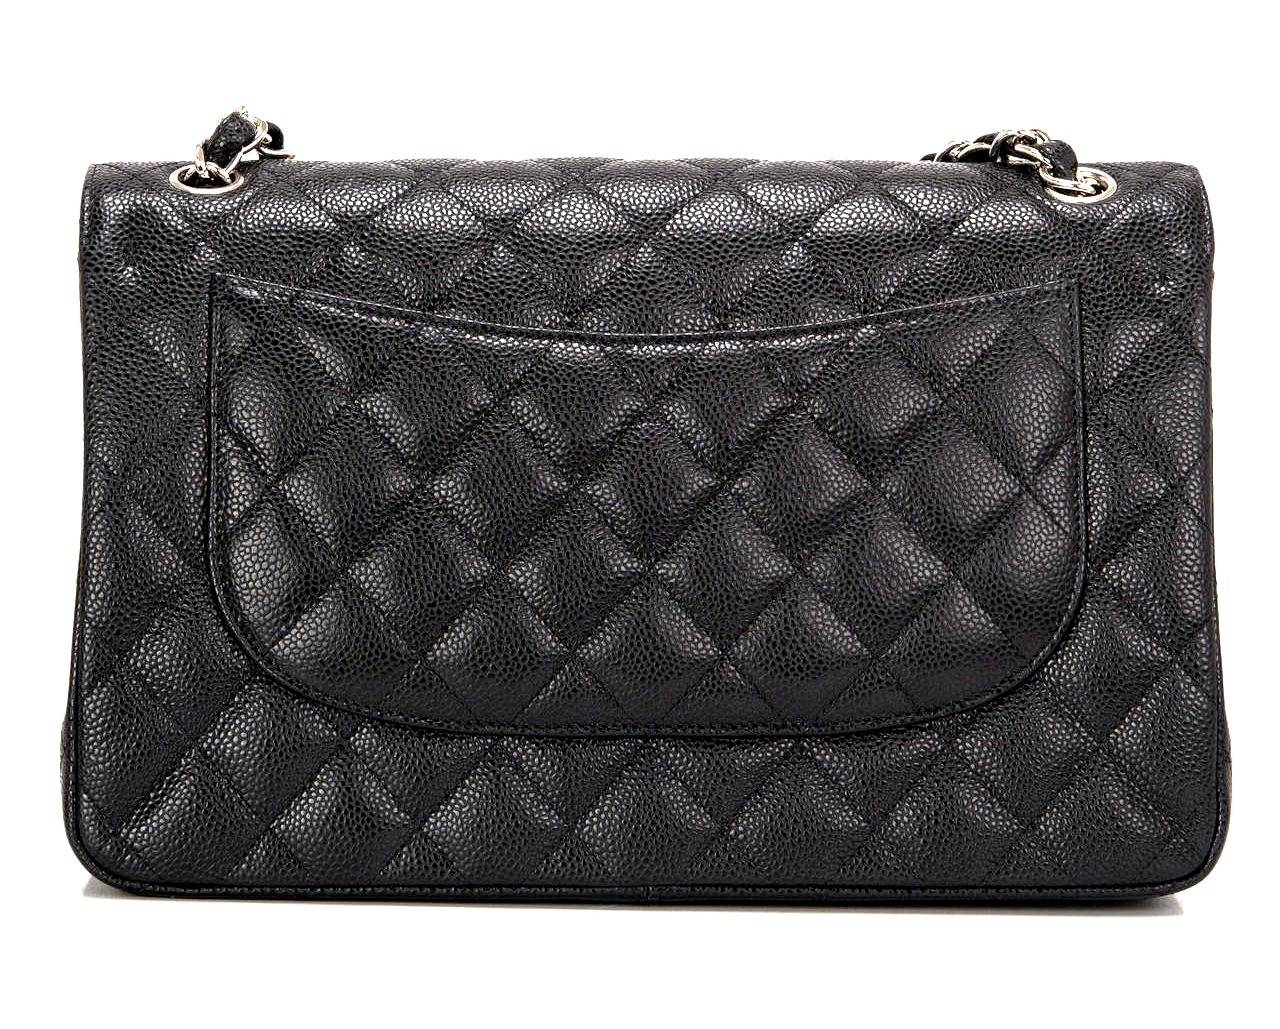 New Chanel Classic Double Flap Maxi Bag - Caviar 2